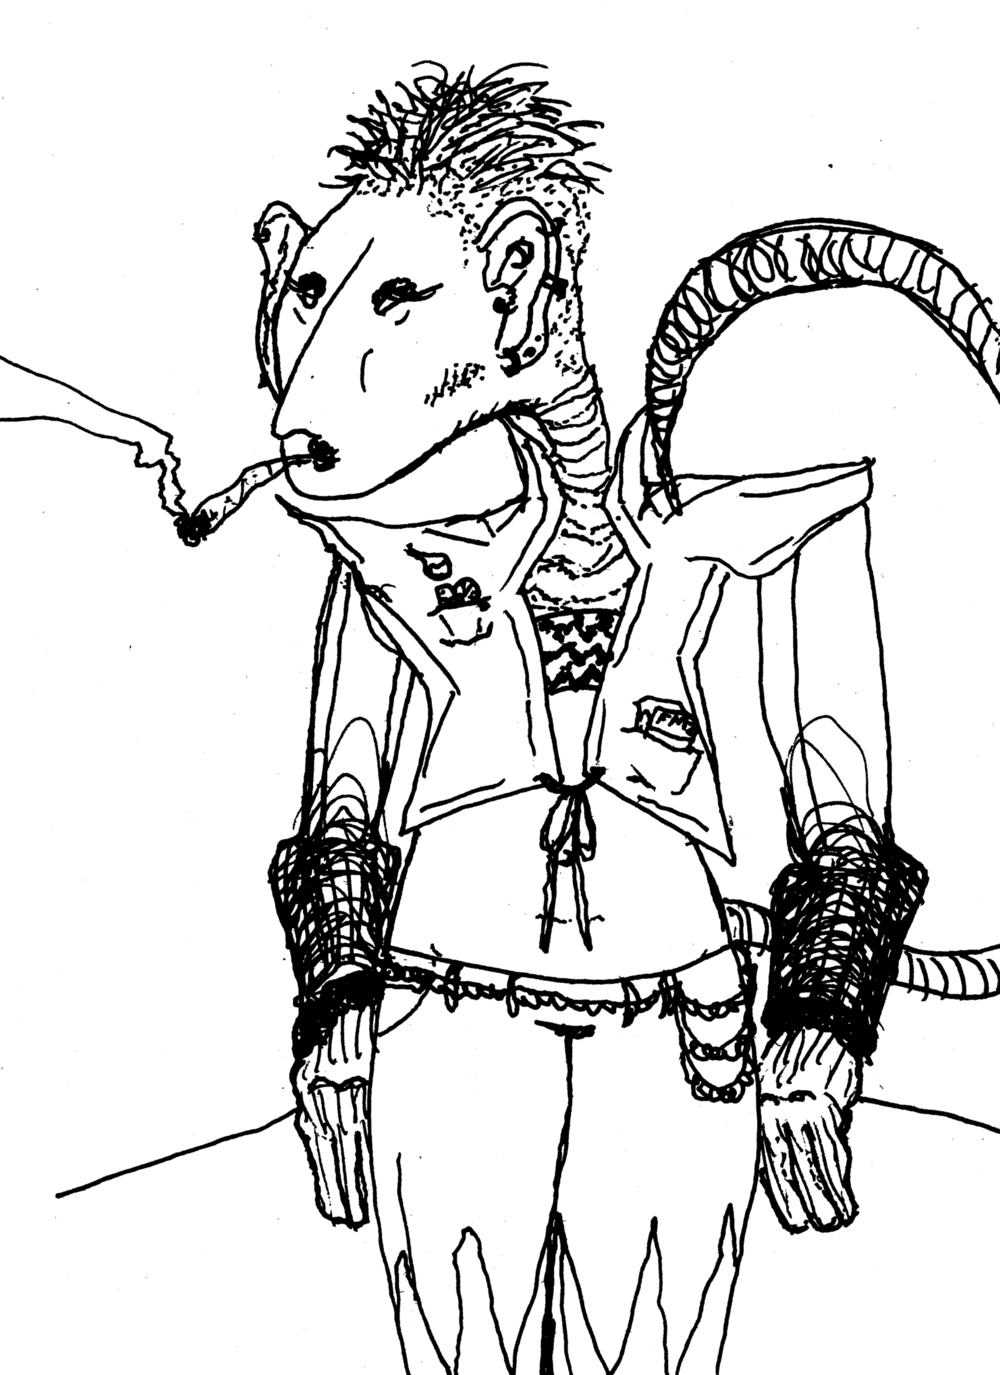 rat smoking.png